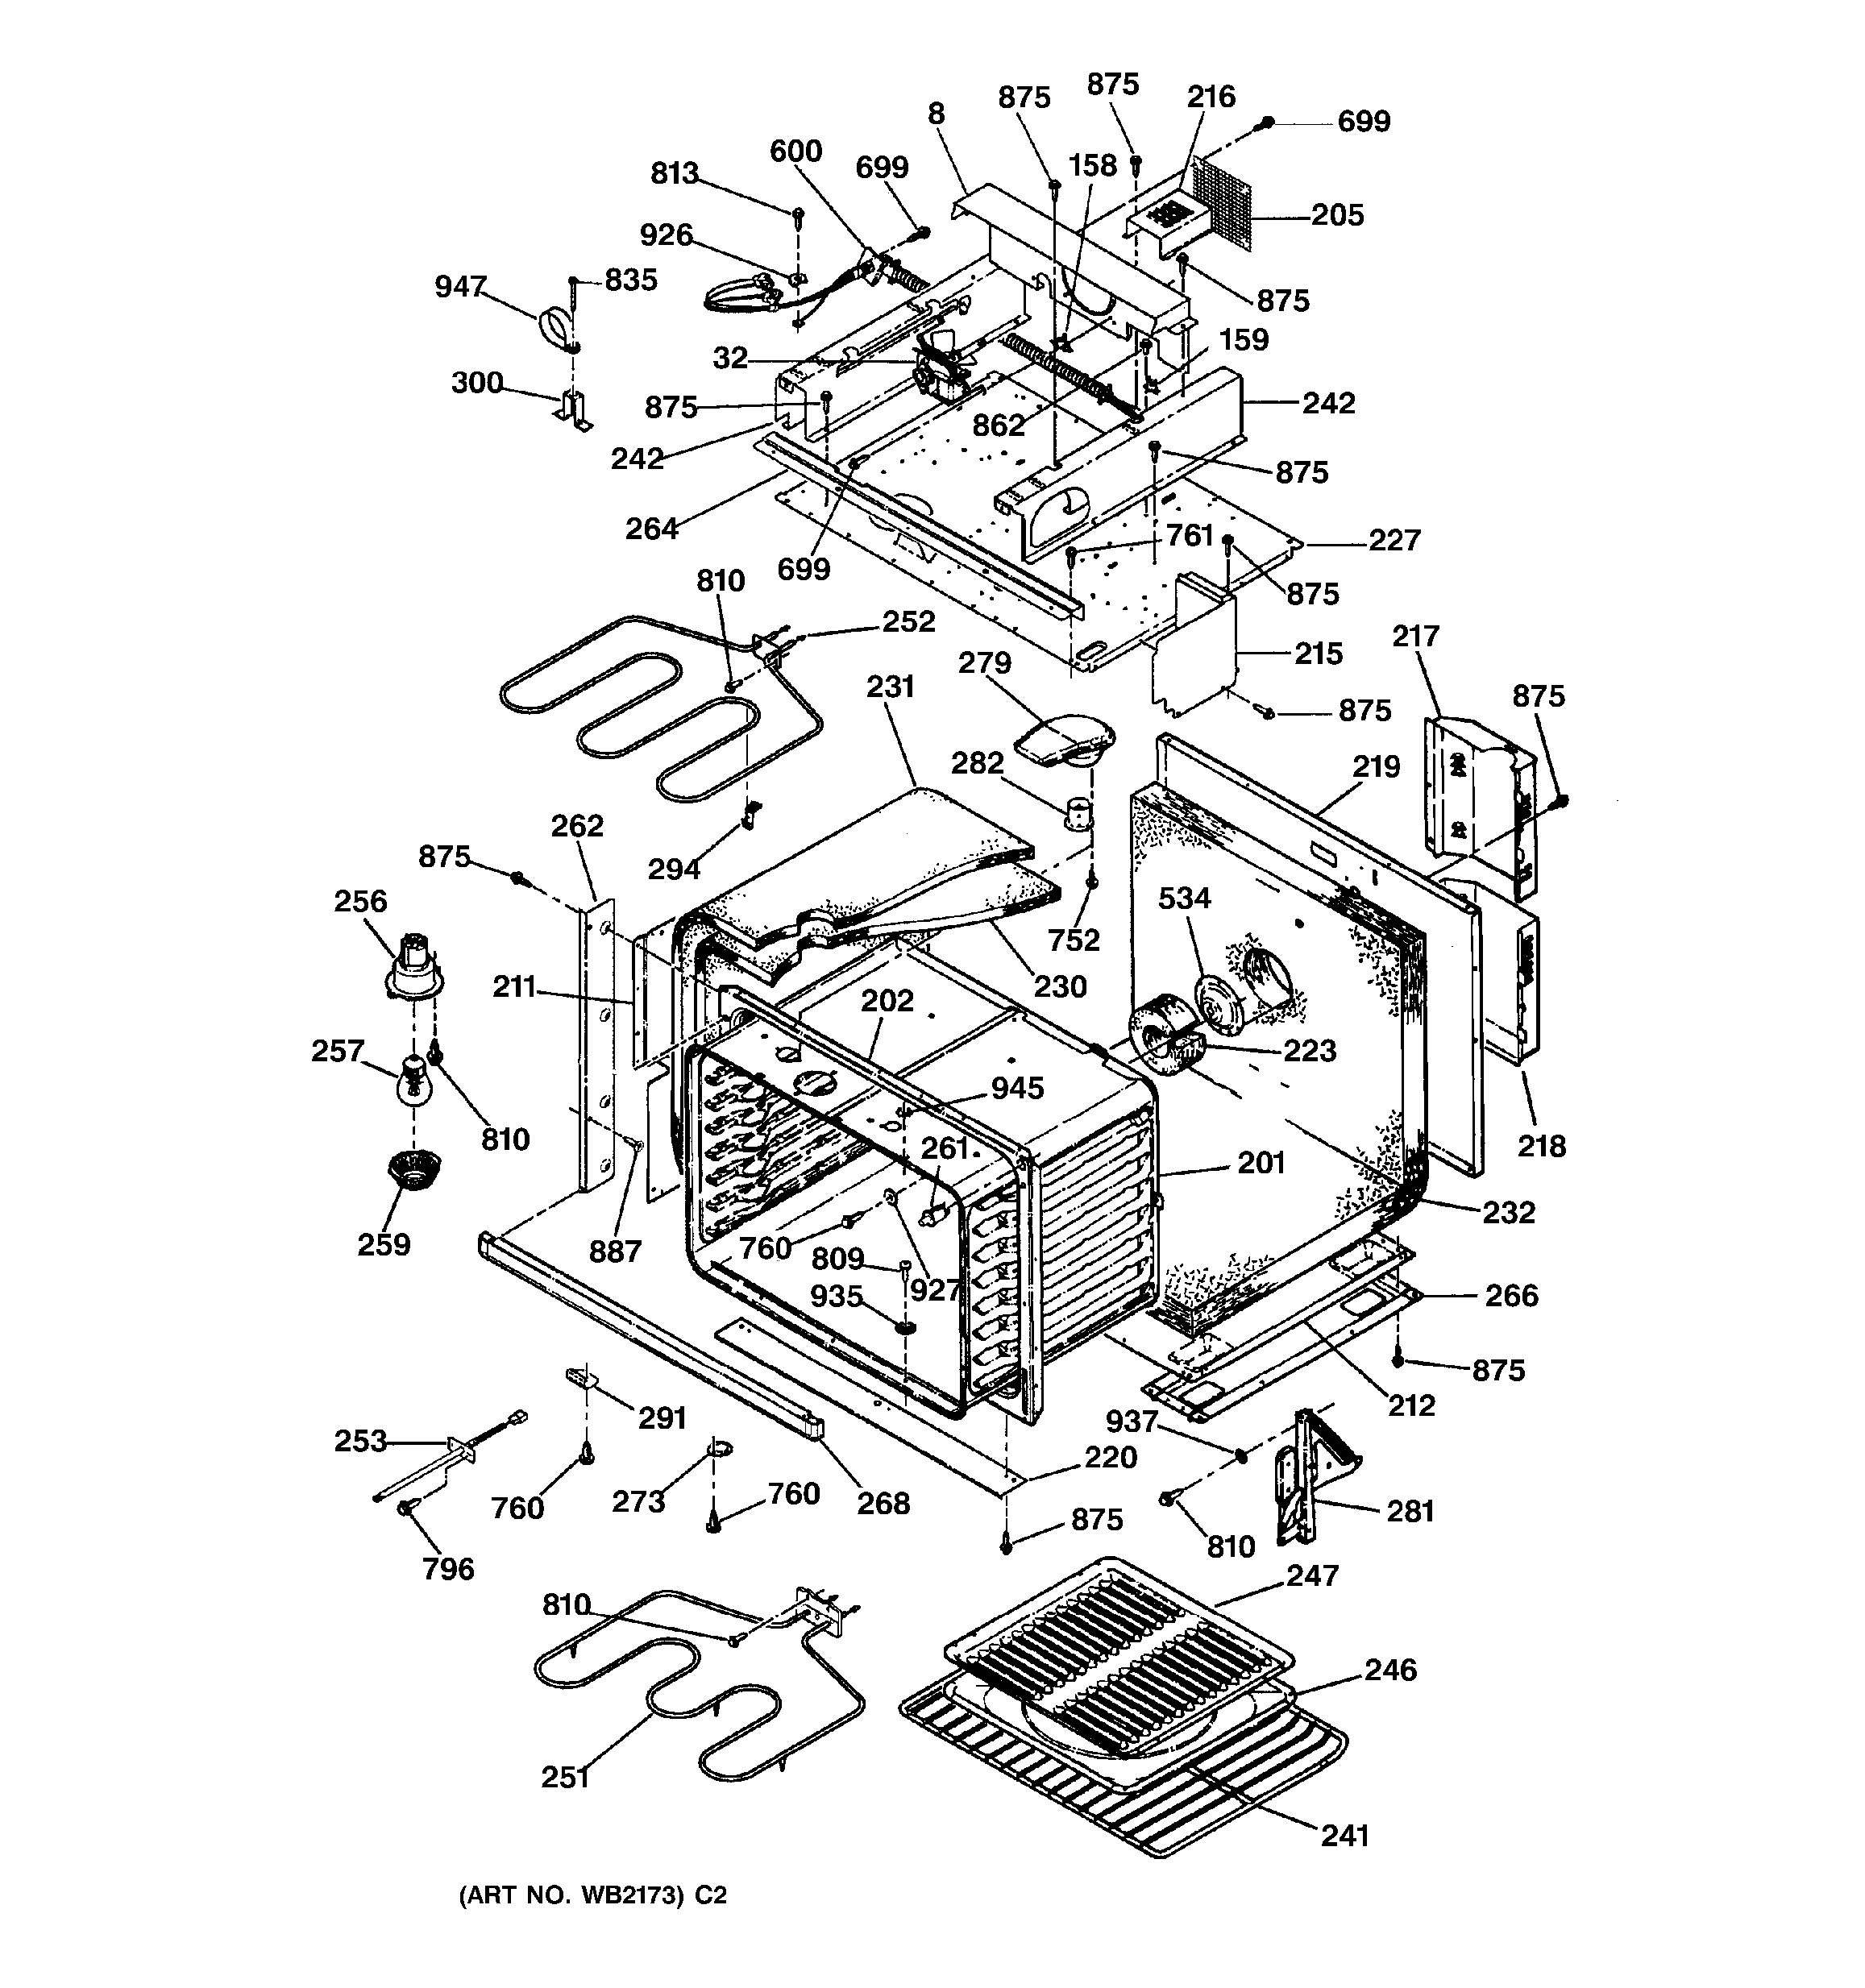 Assembly View For Oven Body With Microwave Support